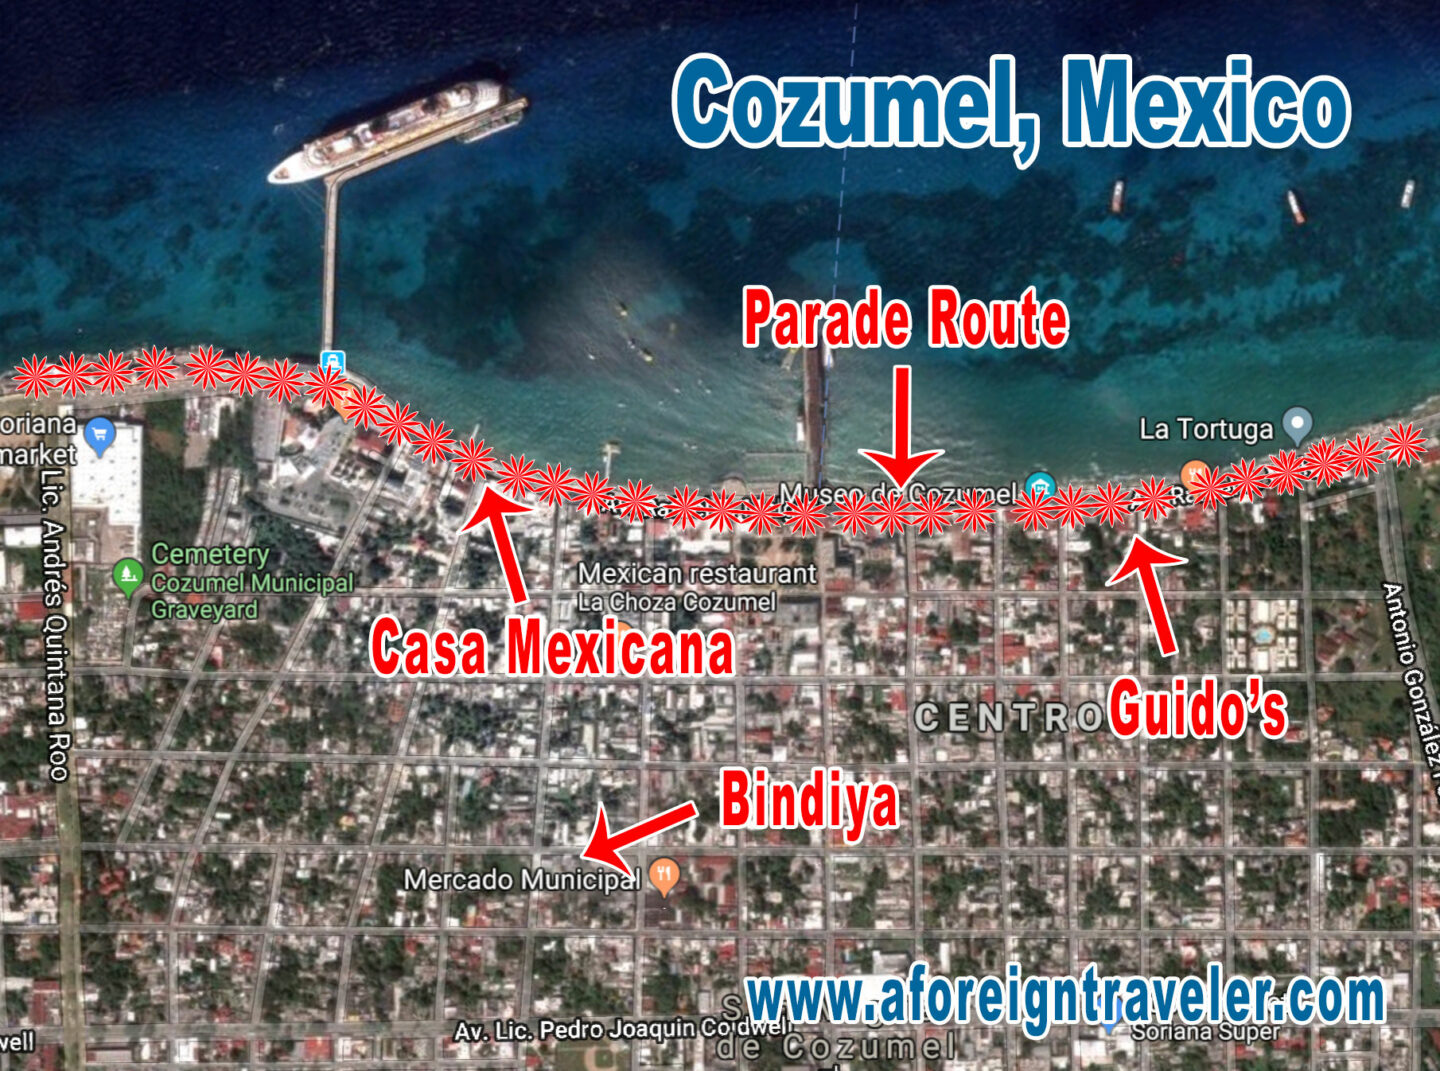 Map of Carnaval in Cozumel